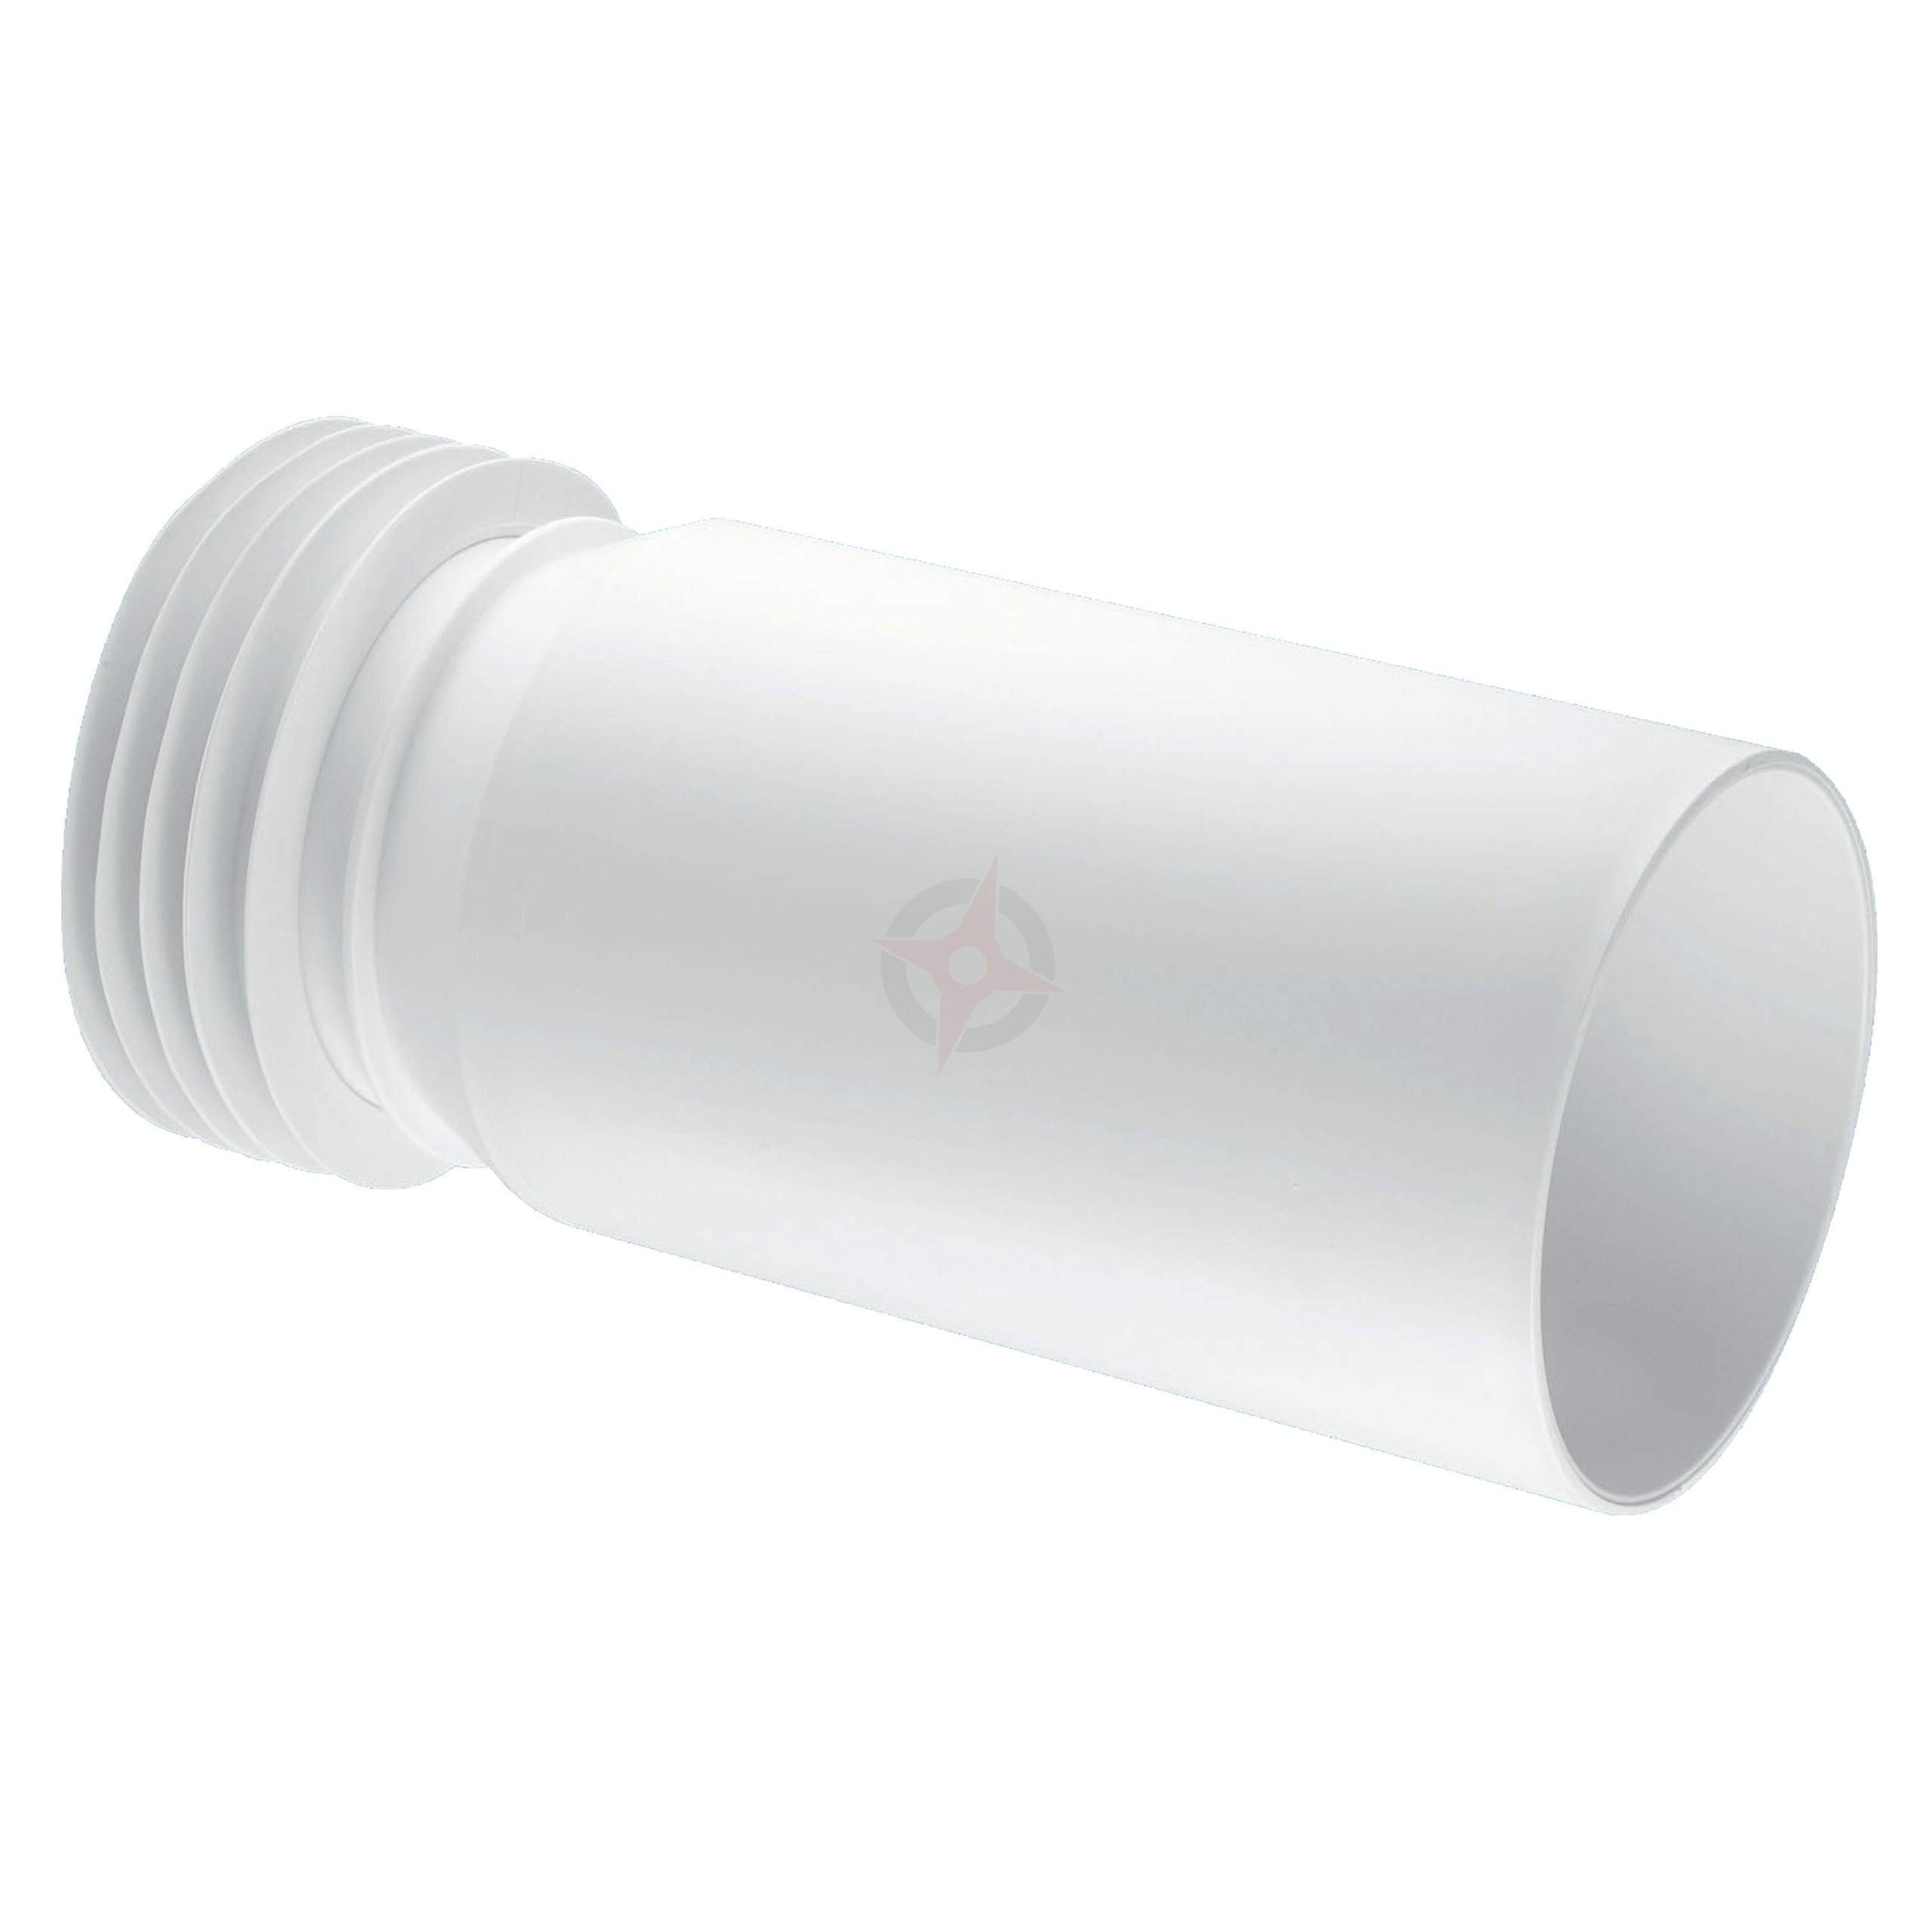 McAlpine 110mm Pan Connector Extension WC-EXTA